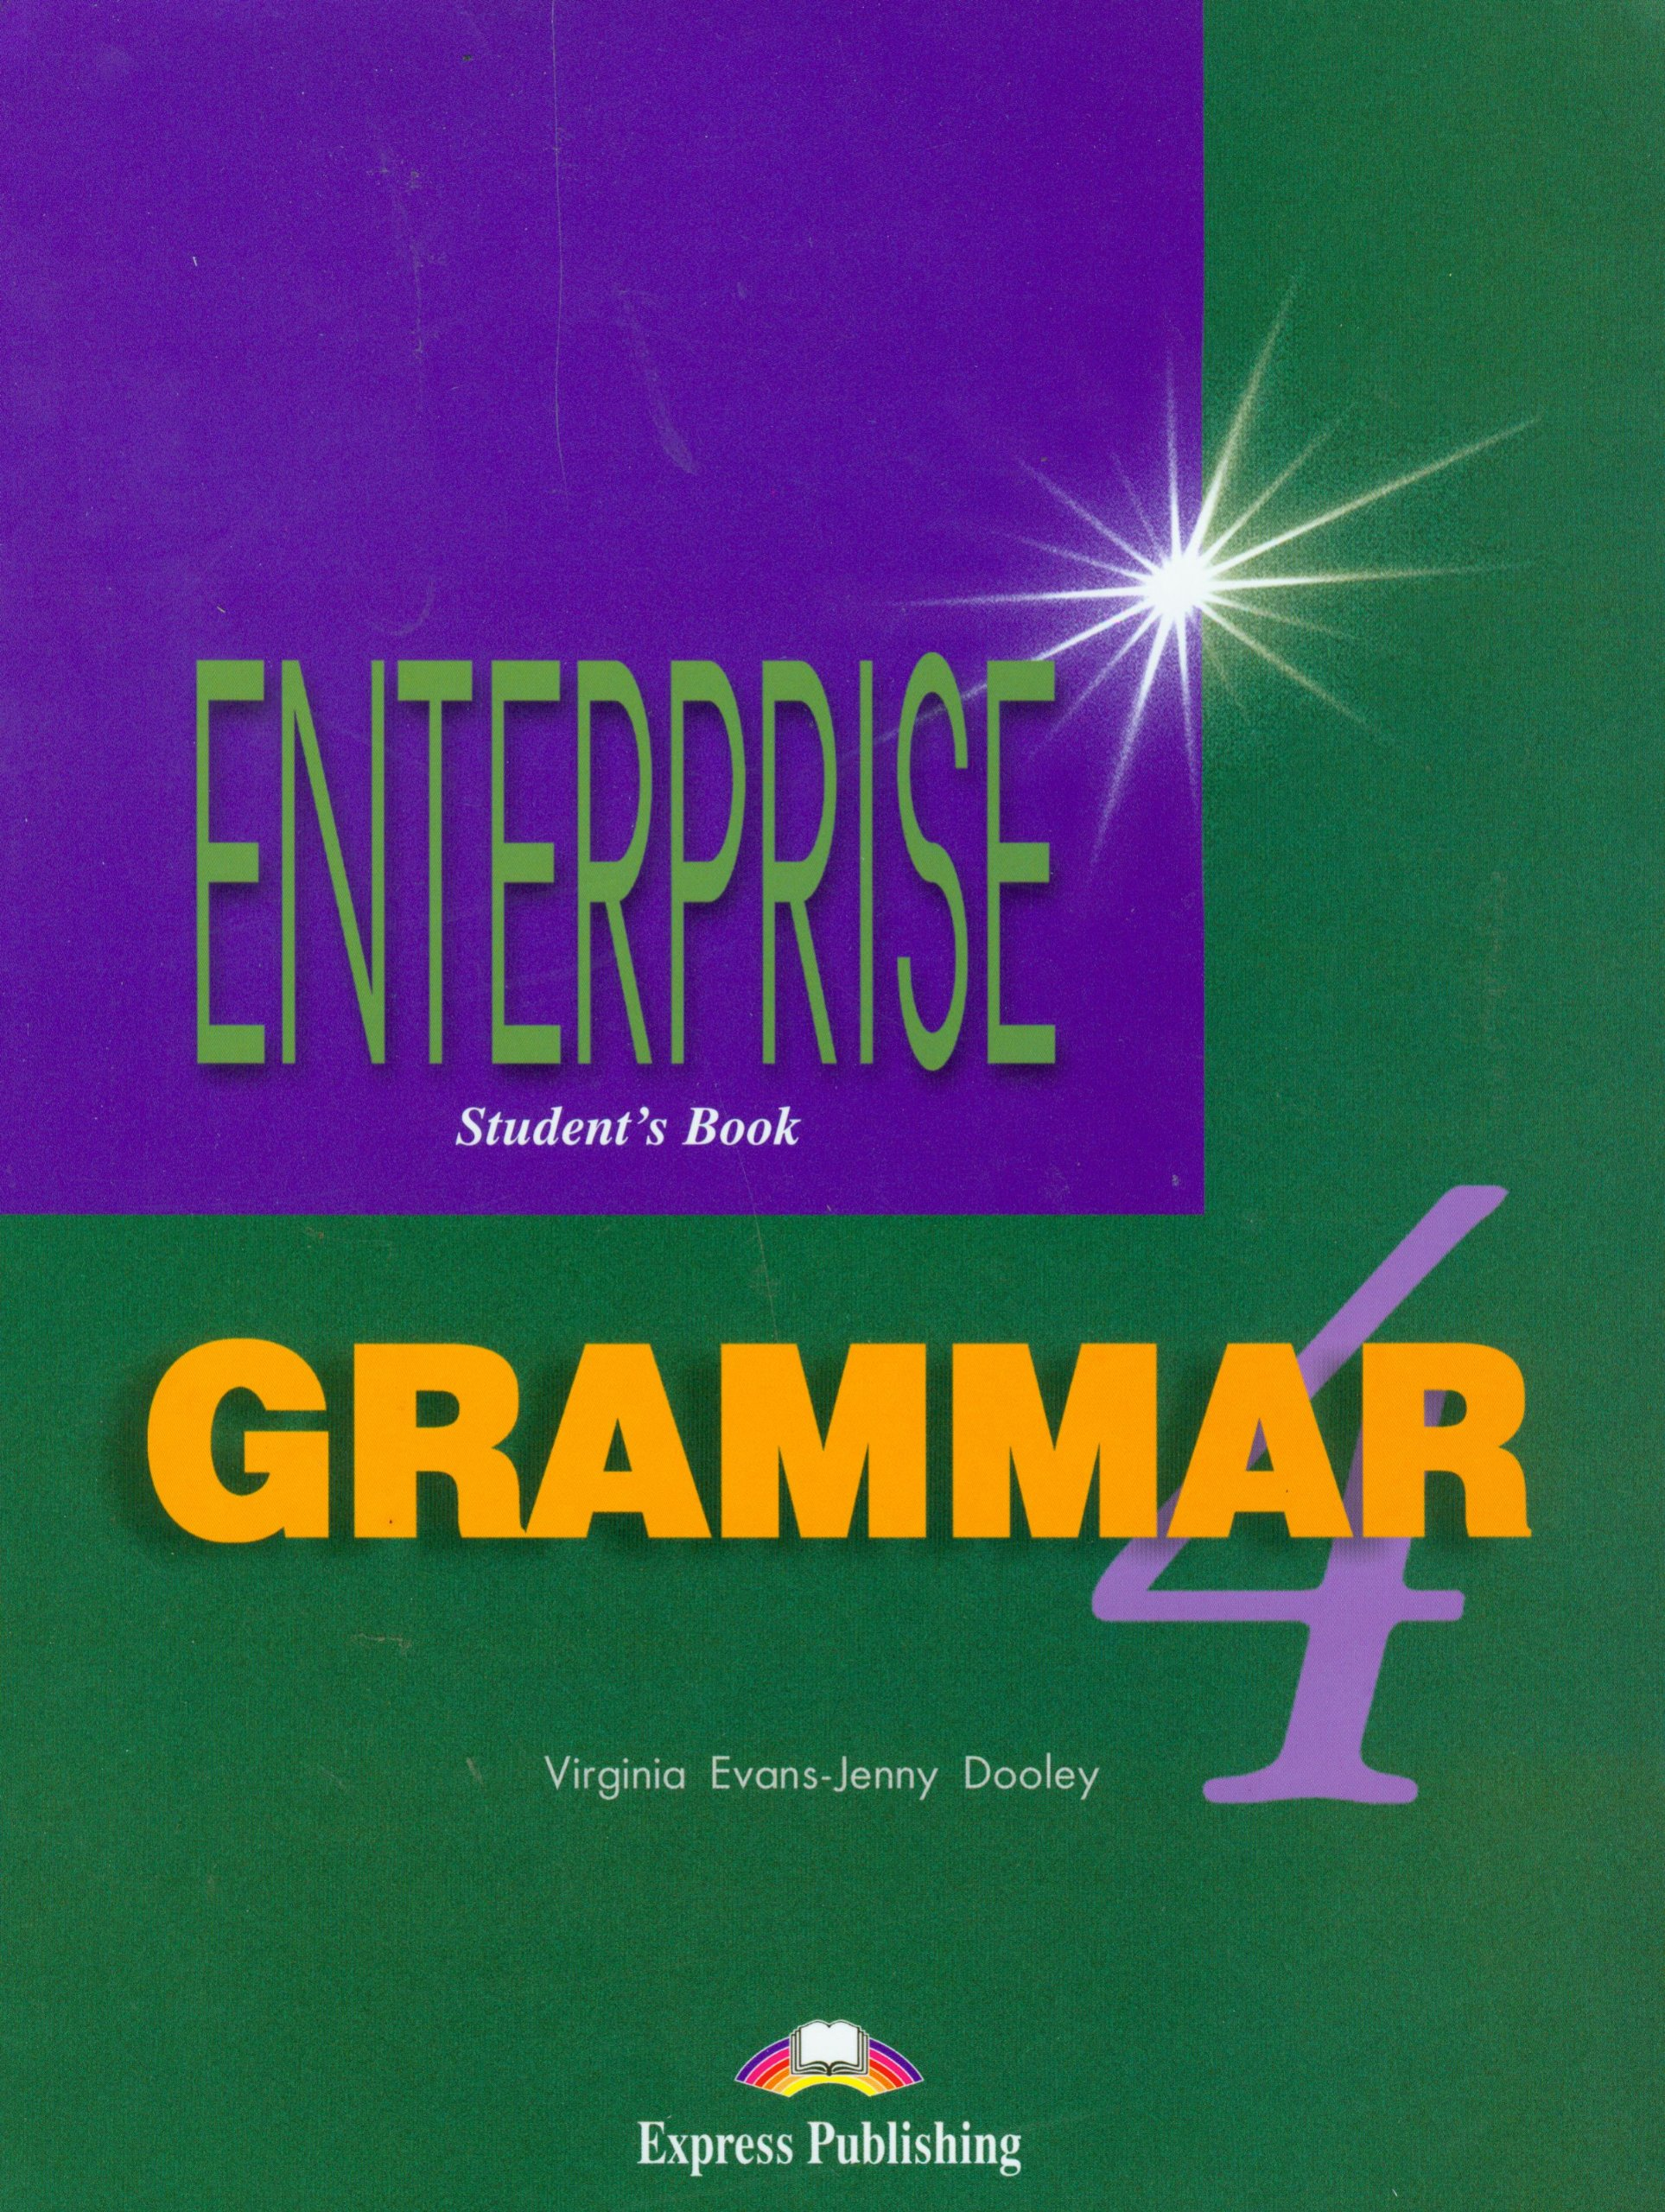 ENTERPRISE 4 Grammar Student's Book